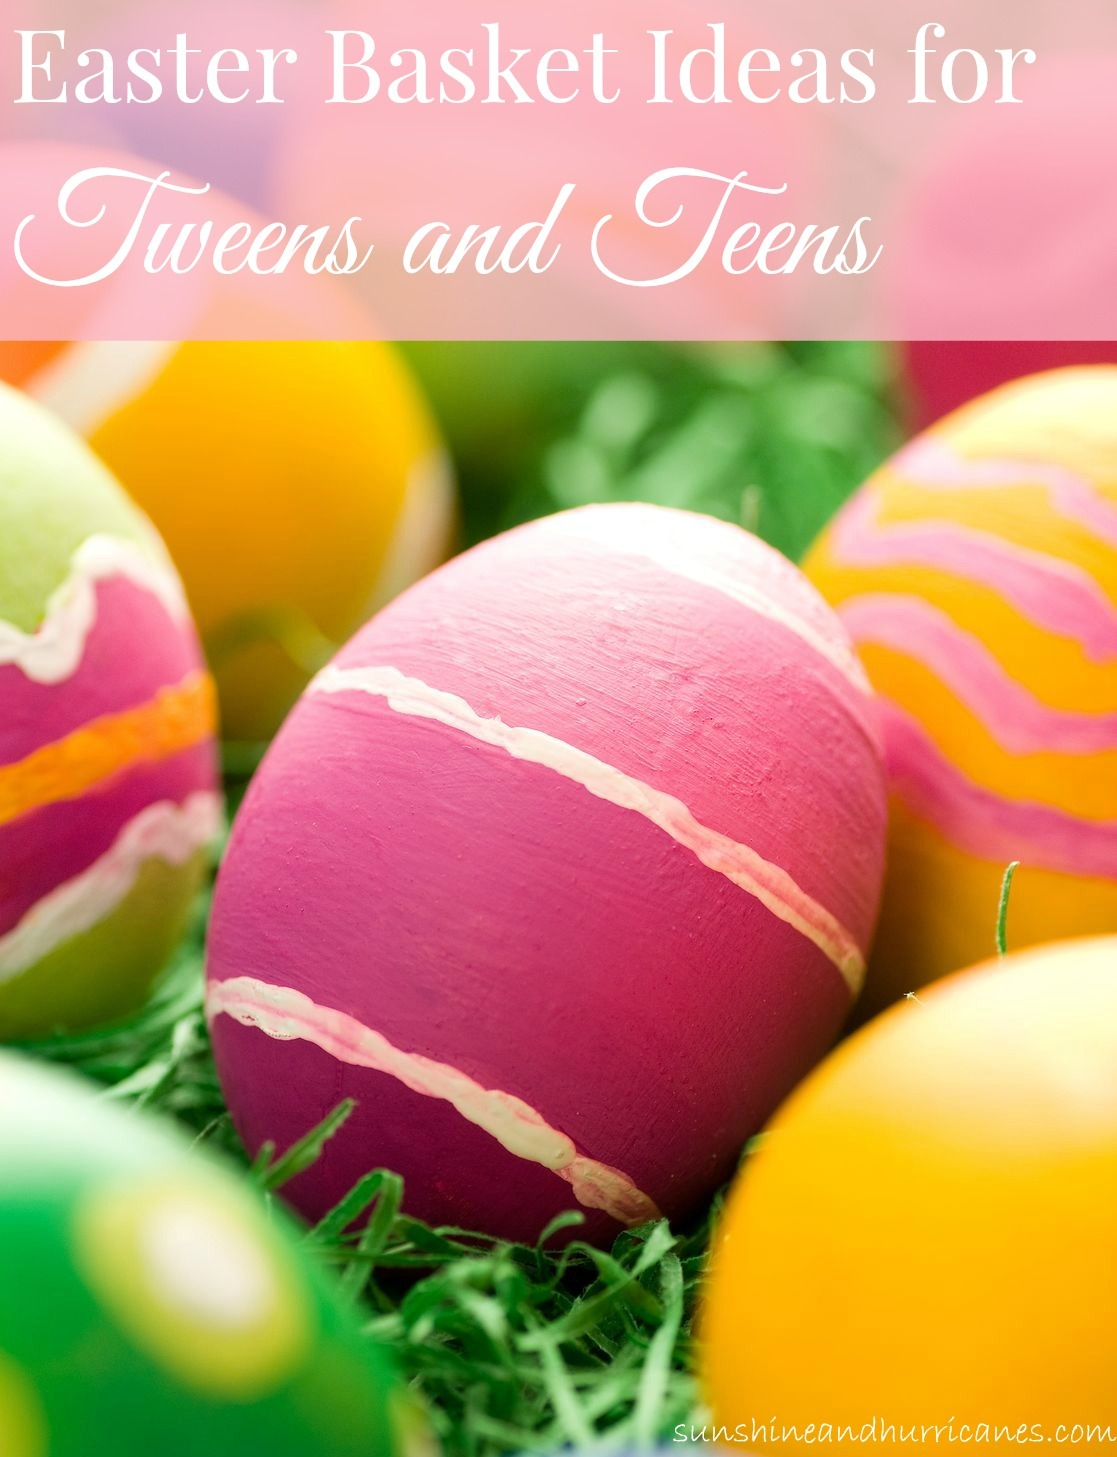 Best Apps For 4 Year Olds >> Easter Basket Ideas For Tweens and Teens - Sunshine and ...